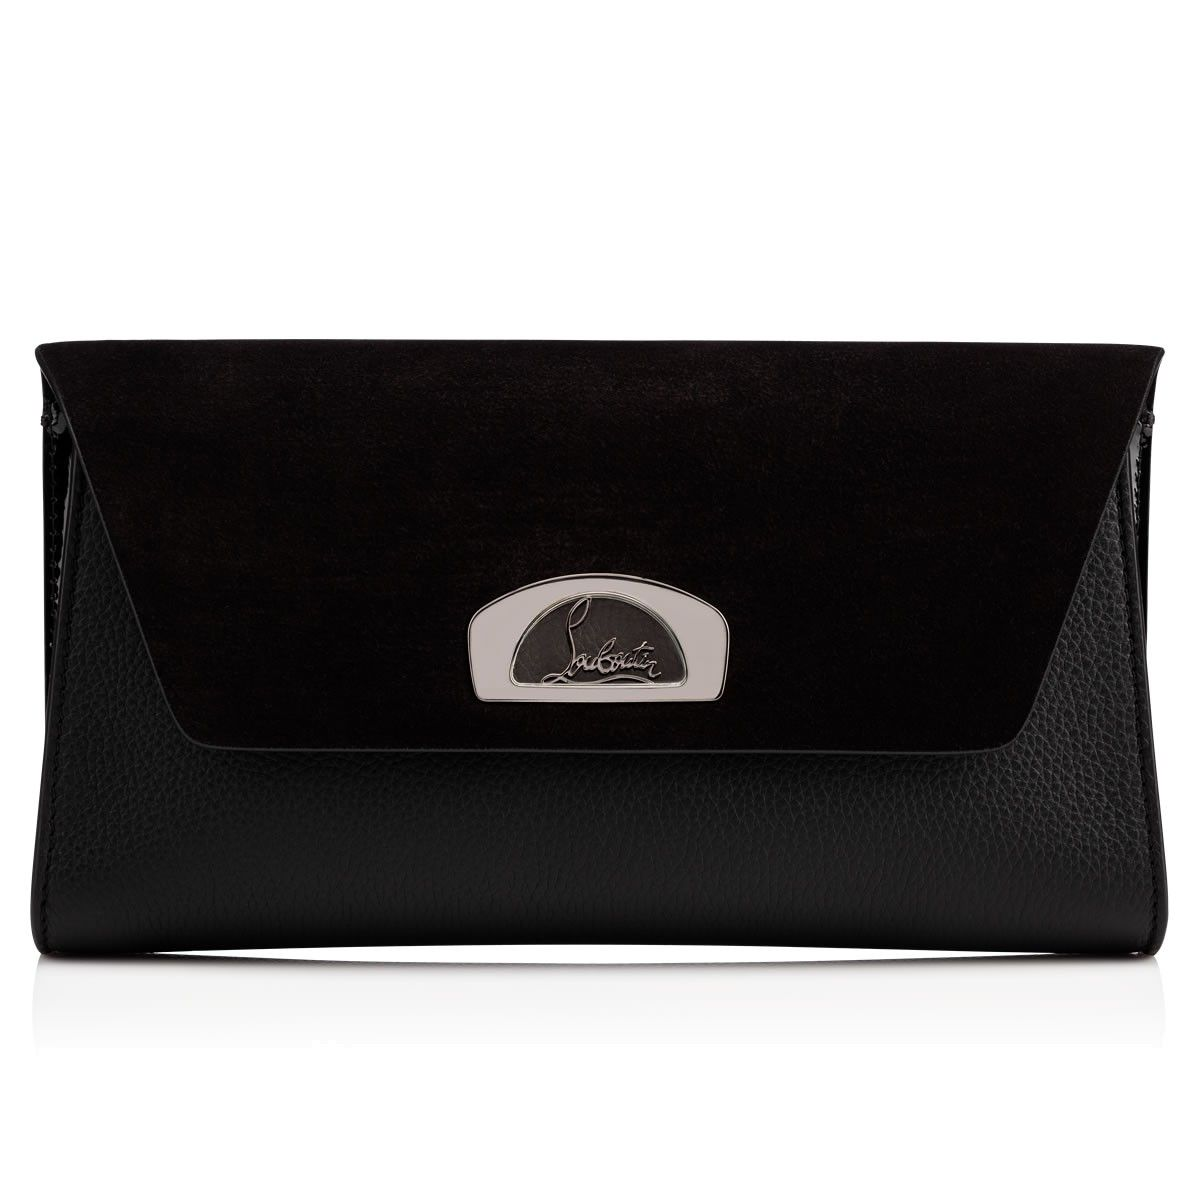 4d5d93908c CHRISTIAN LOUBOUTIN | Vero Dodat Clutch - Black | $ 1,200.00 | In a new,